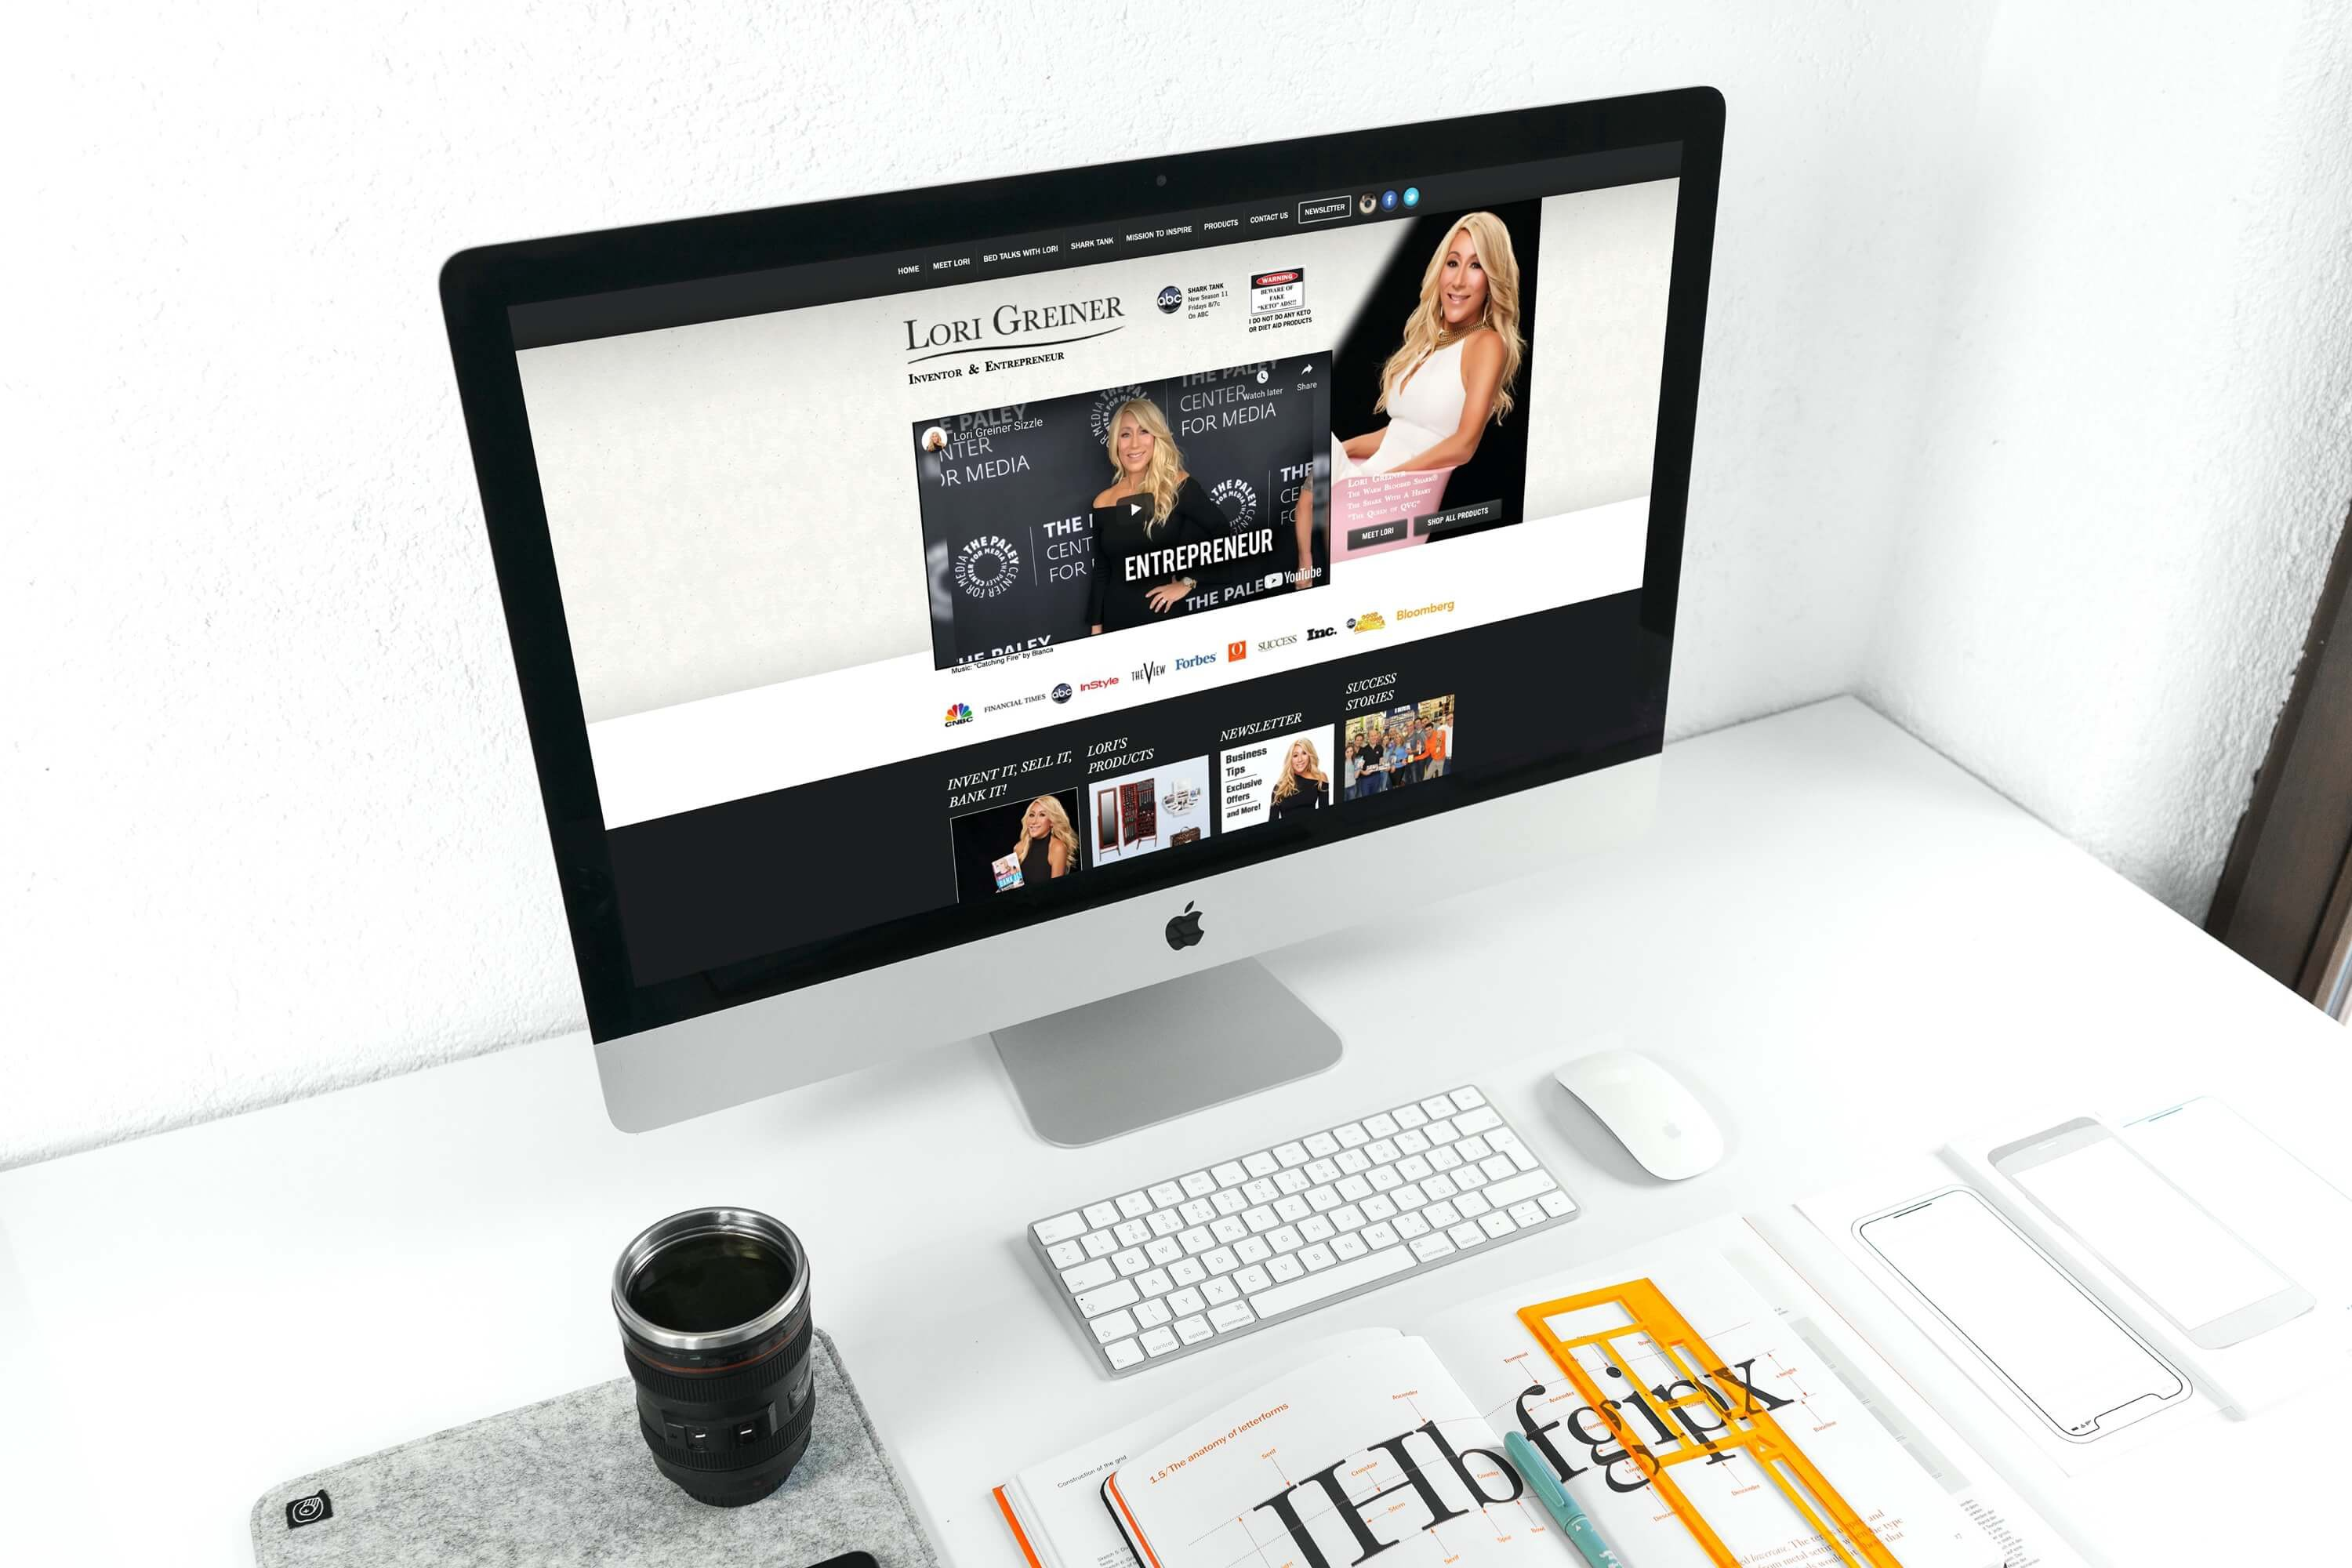 An iMac computer with Lori Greiner's website loaded on the screen.